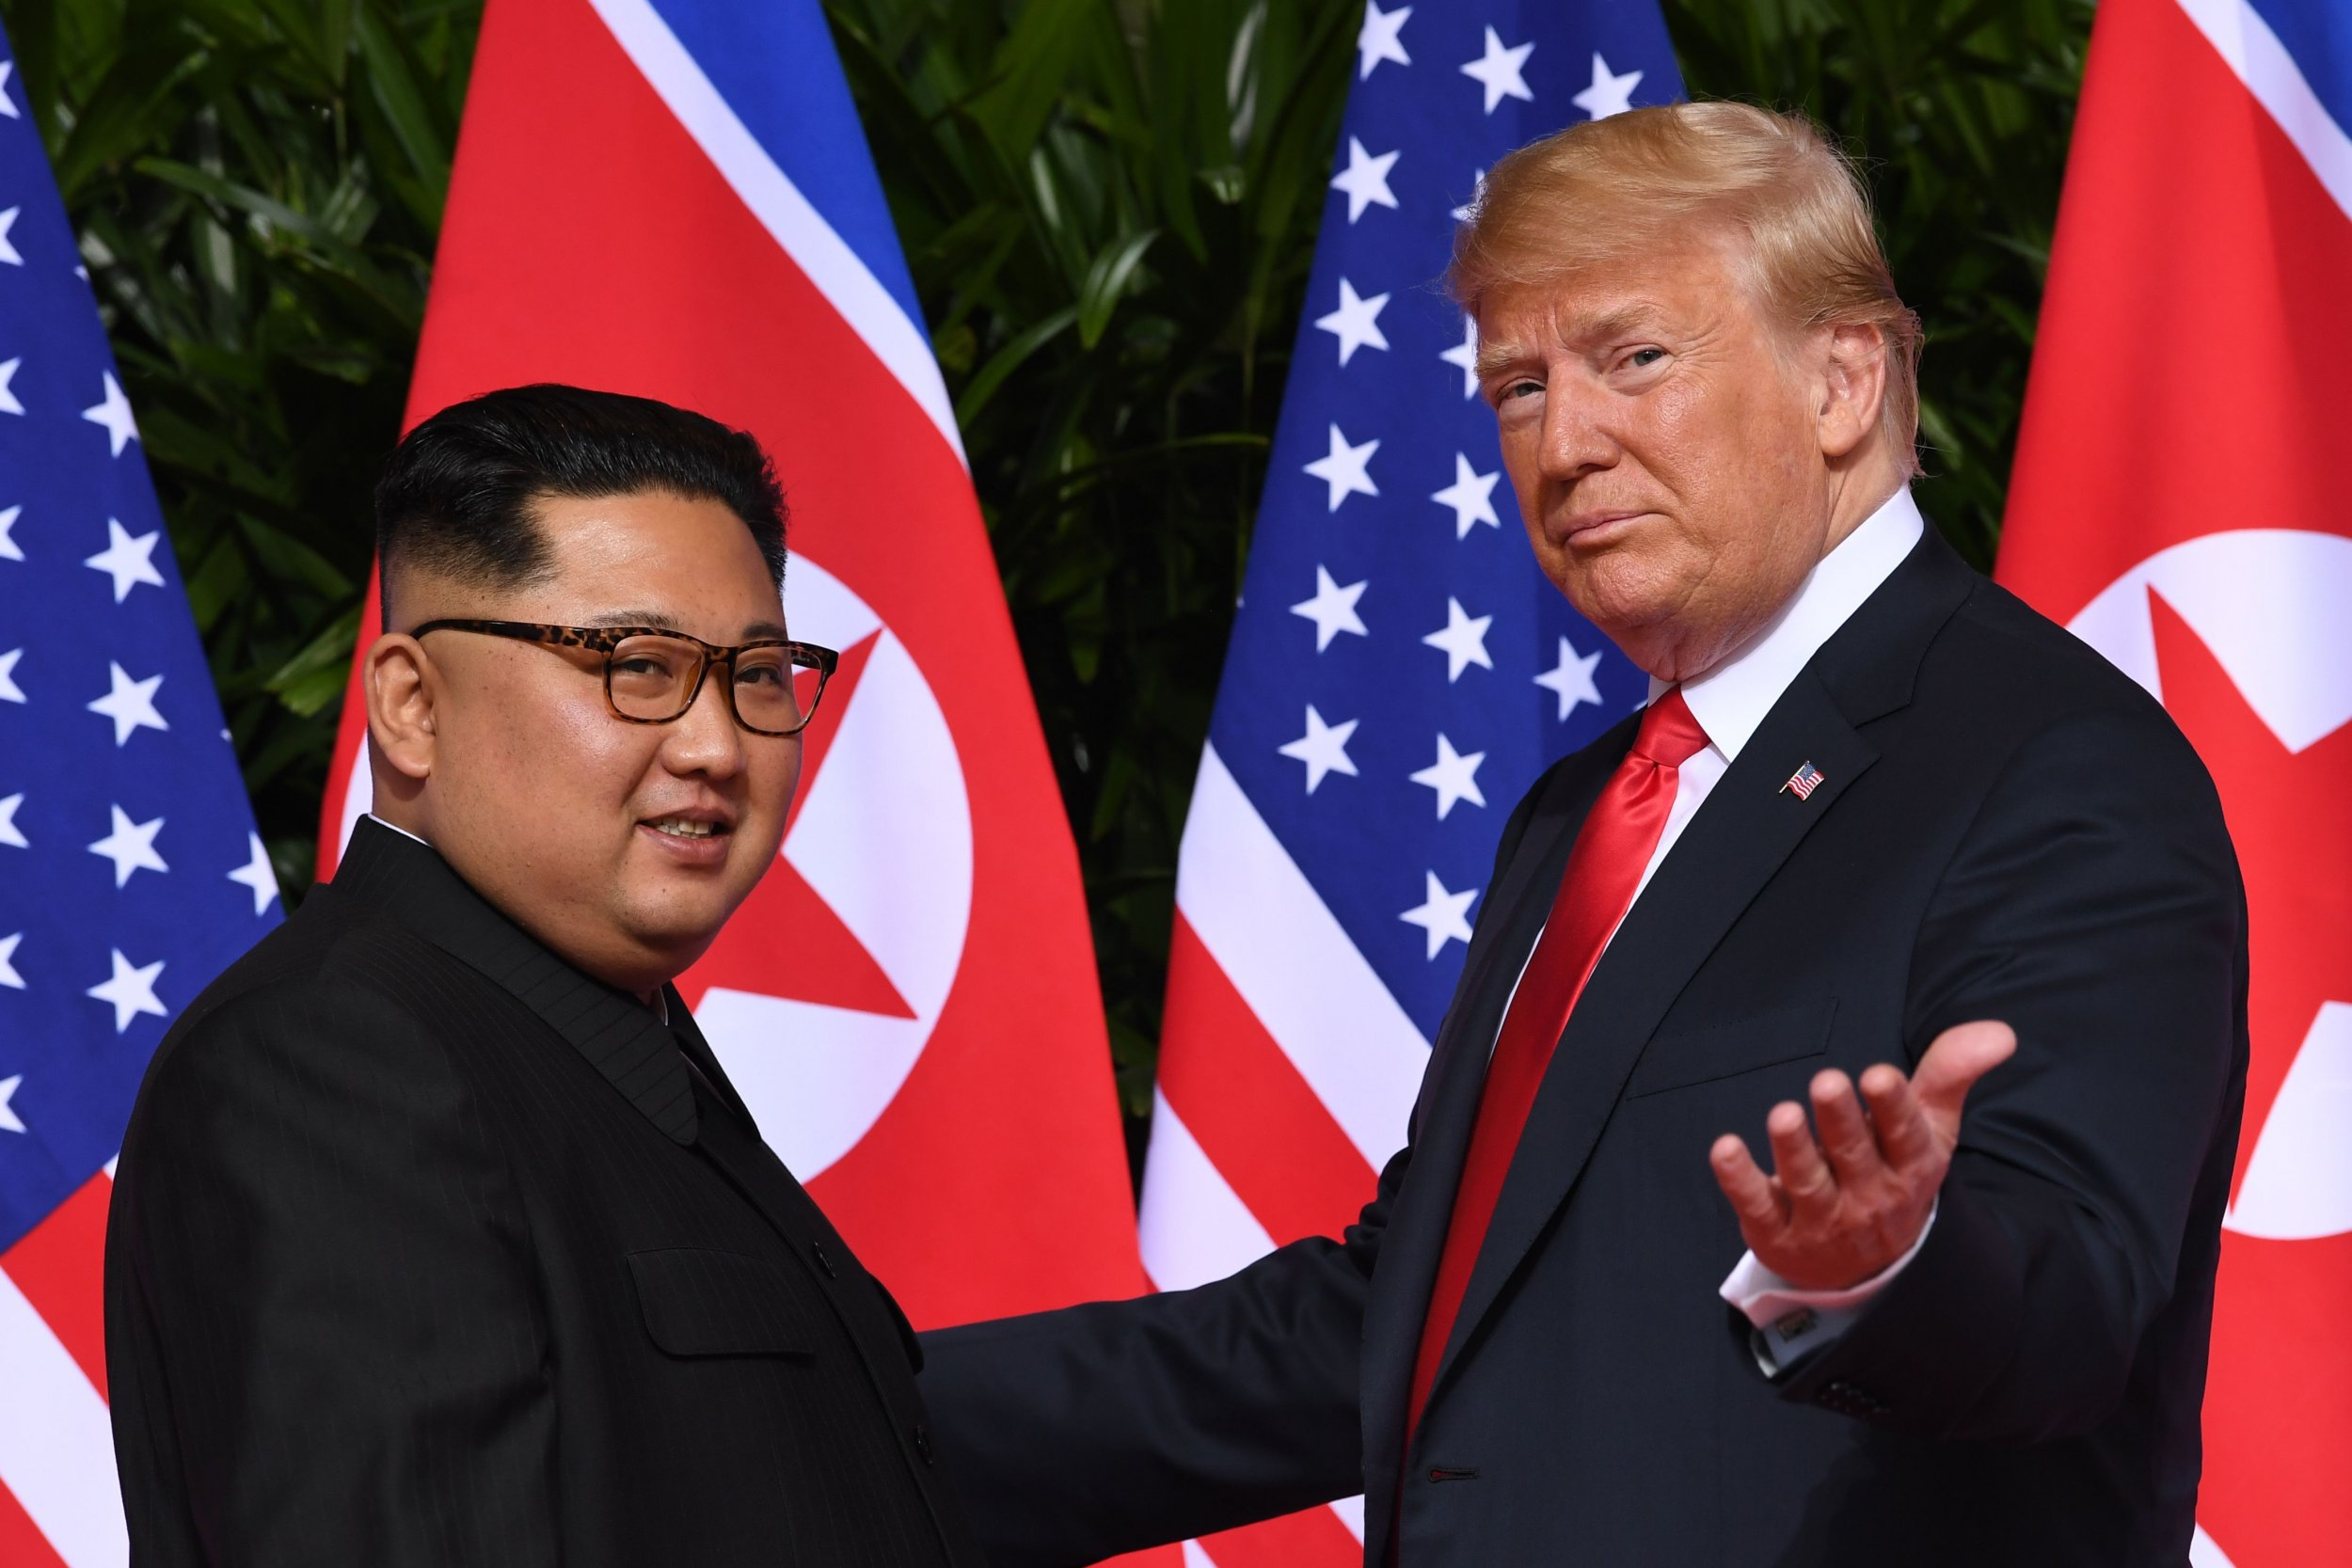 donald trump and north korea peace, missiles